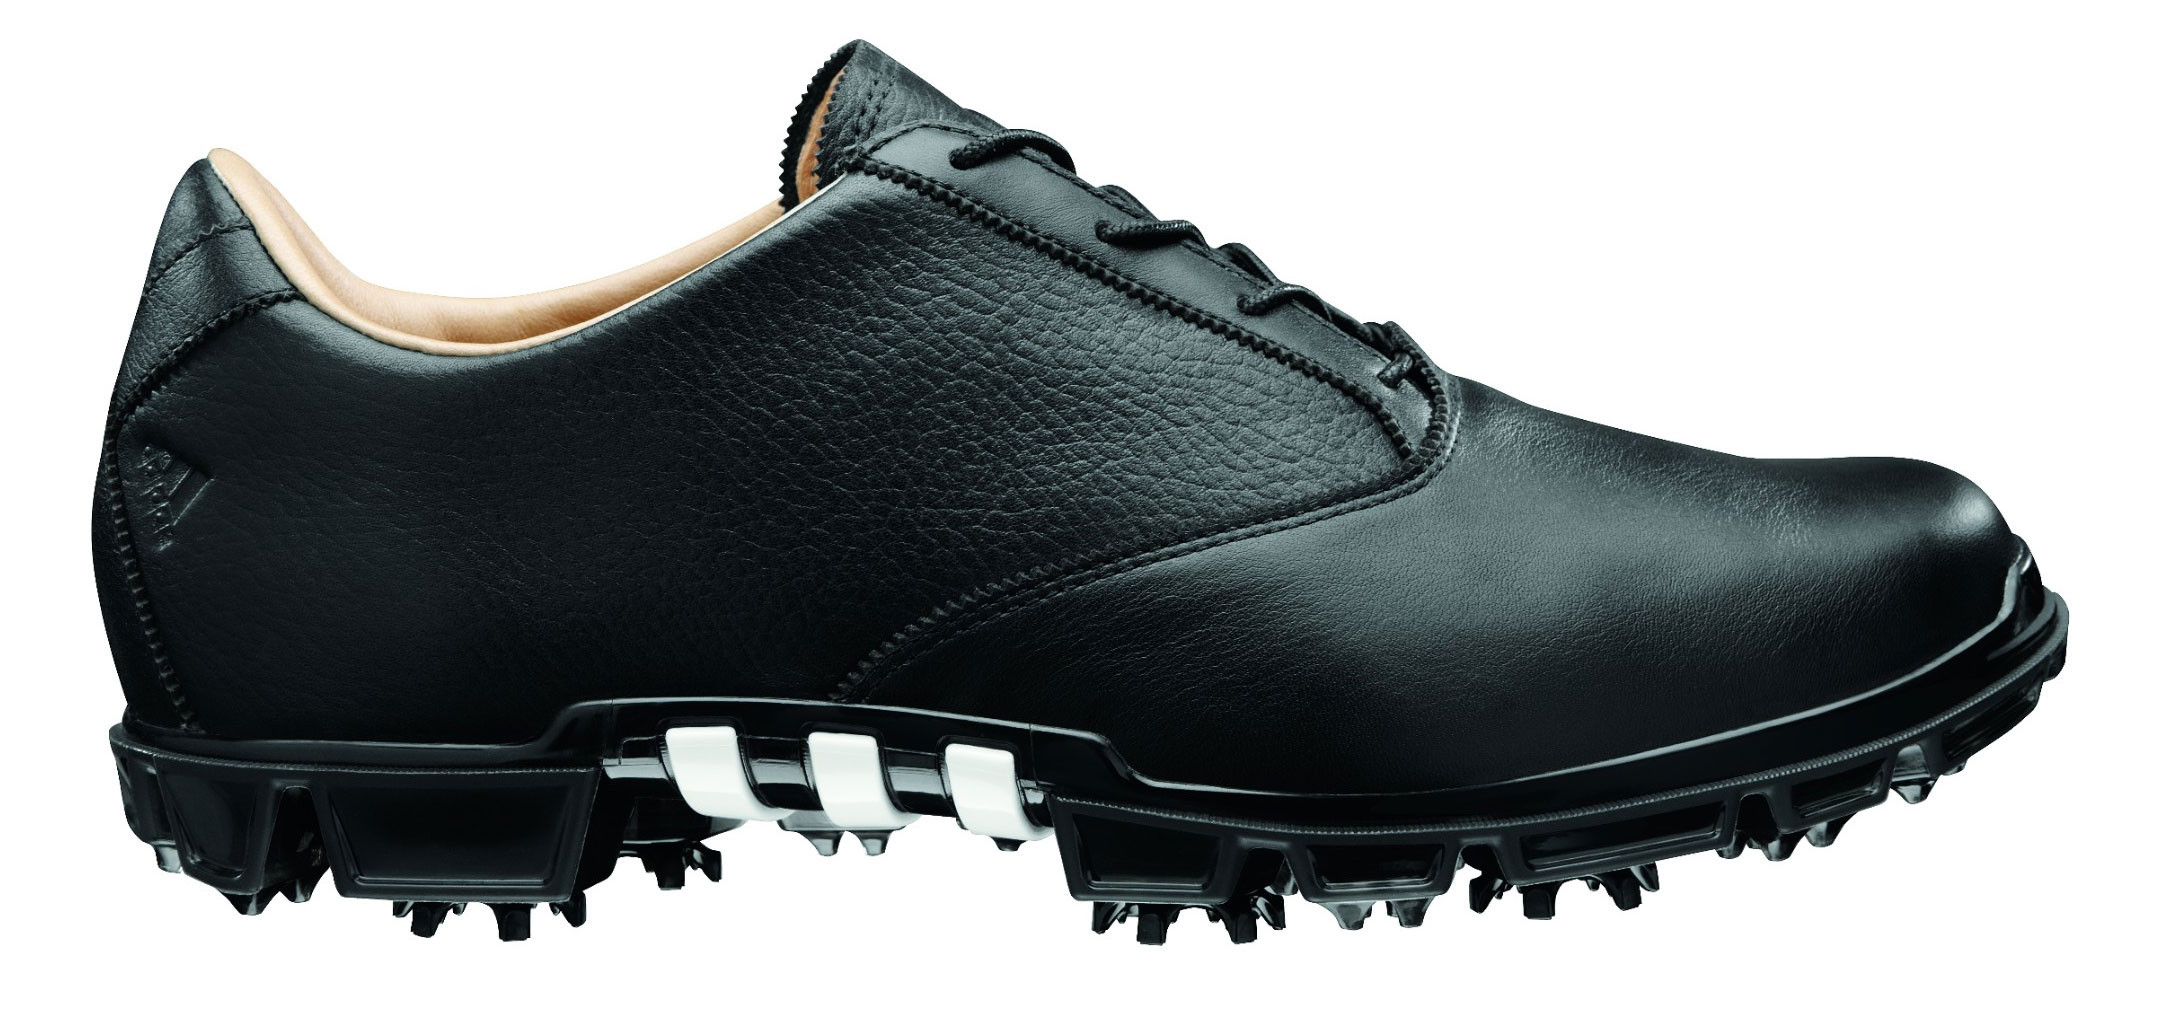 new discount adidas adipure motion black golf shoes